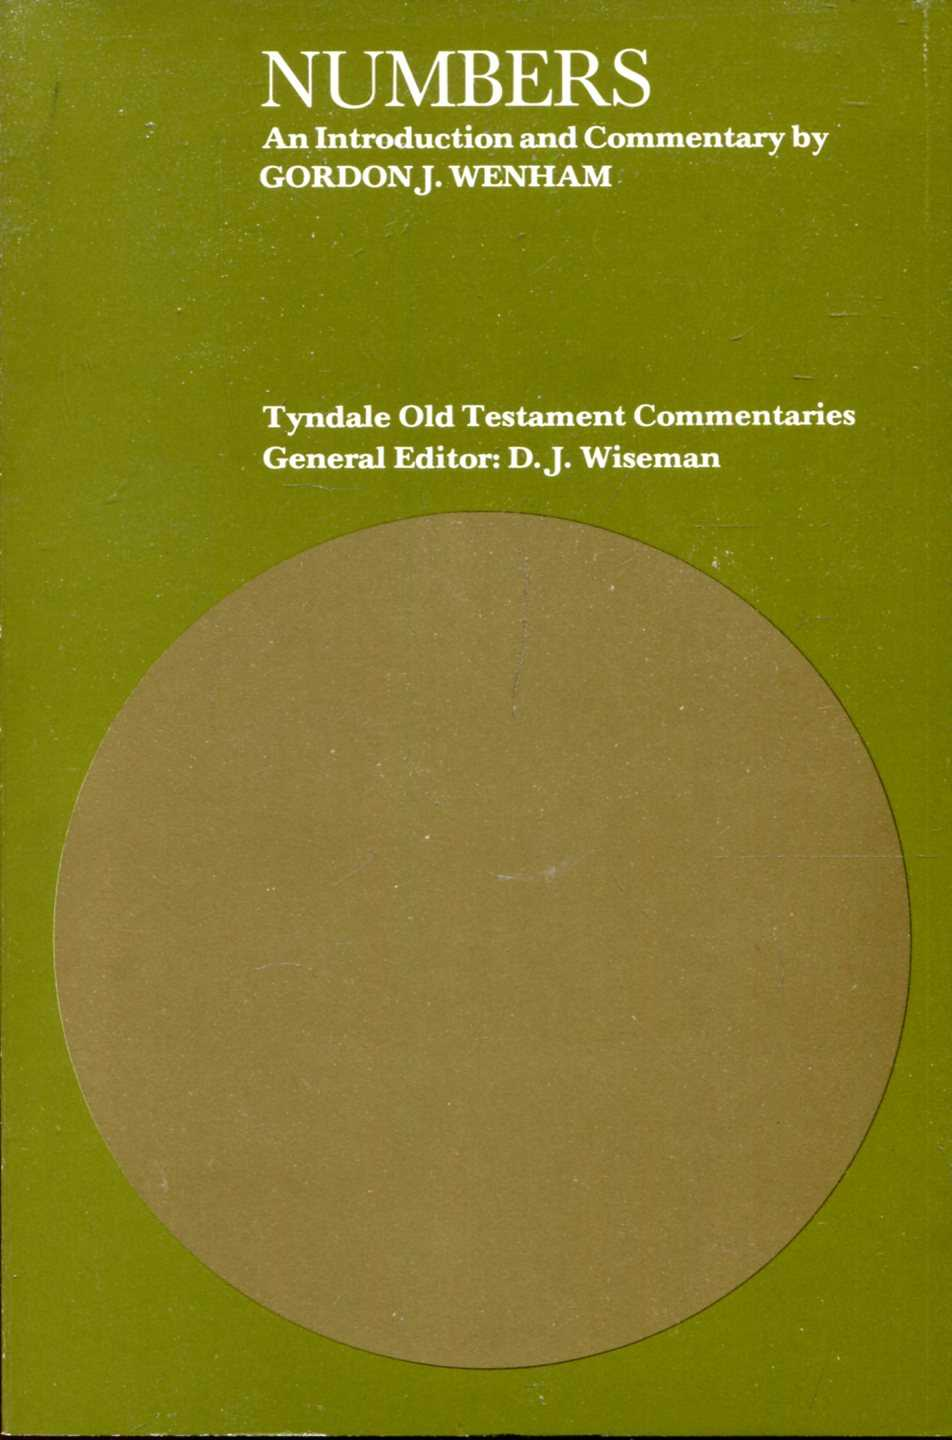 Image for Numbers: An Introduction and Commentary (Tyndale Old Testament Commentary Series)